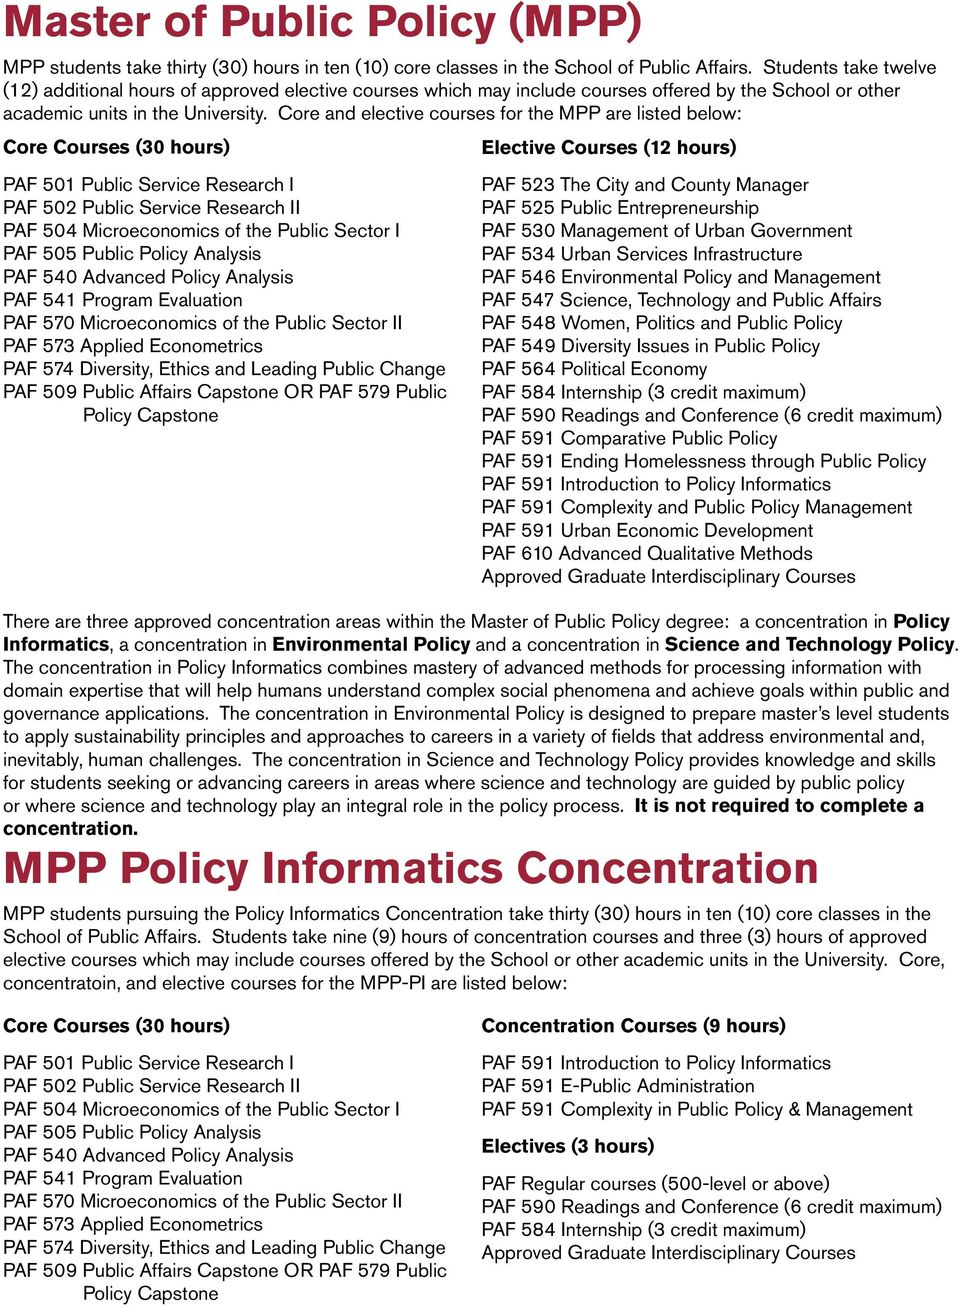 Core and elective courses for the MPP are listed below: Core Courses (30 hours) Elective Courses (12 hours) PAF 504 Microeconomics of the Public Sector I PAF 540 Advanced Policy Analysis PAF 570